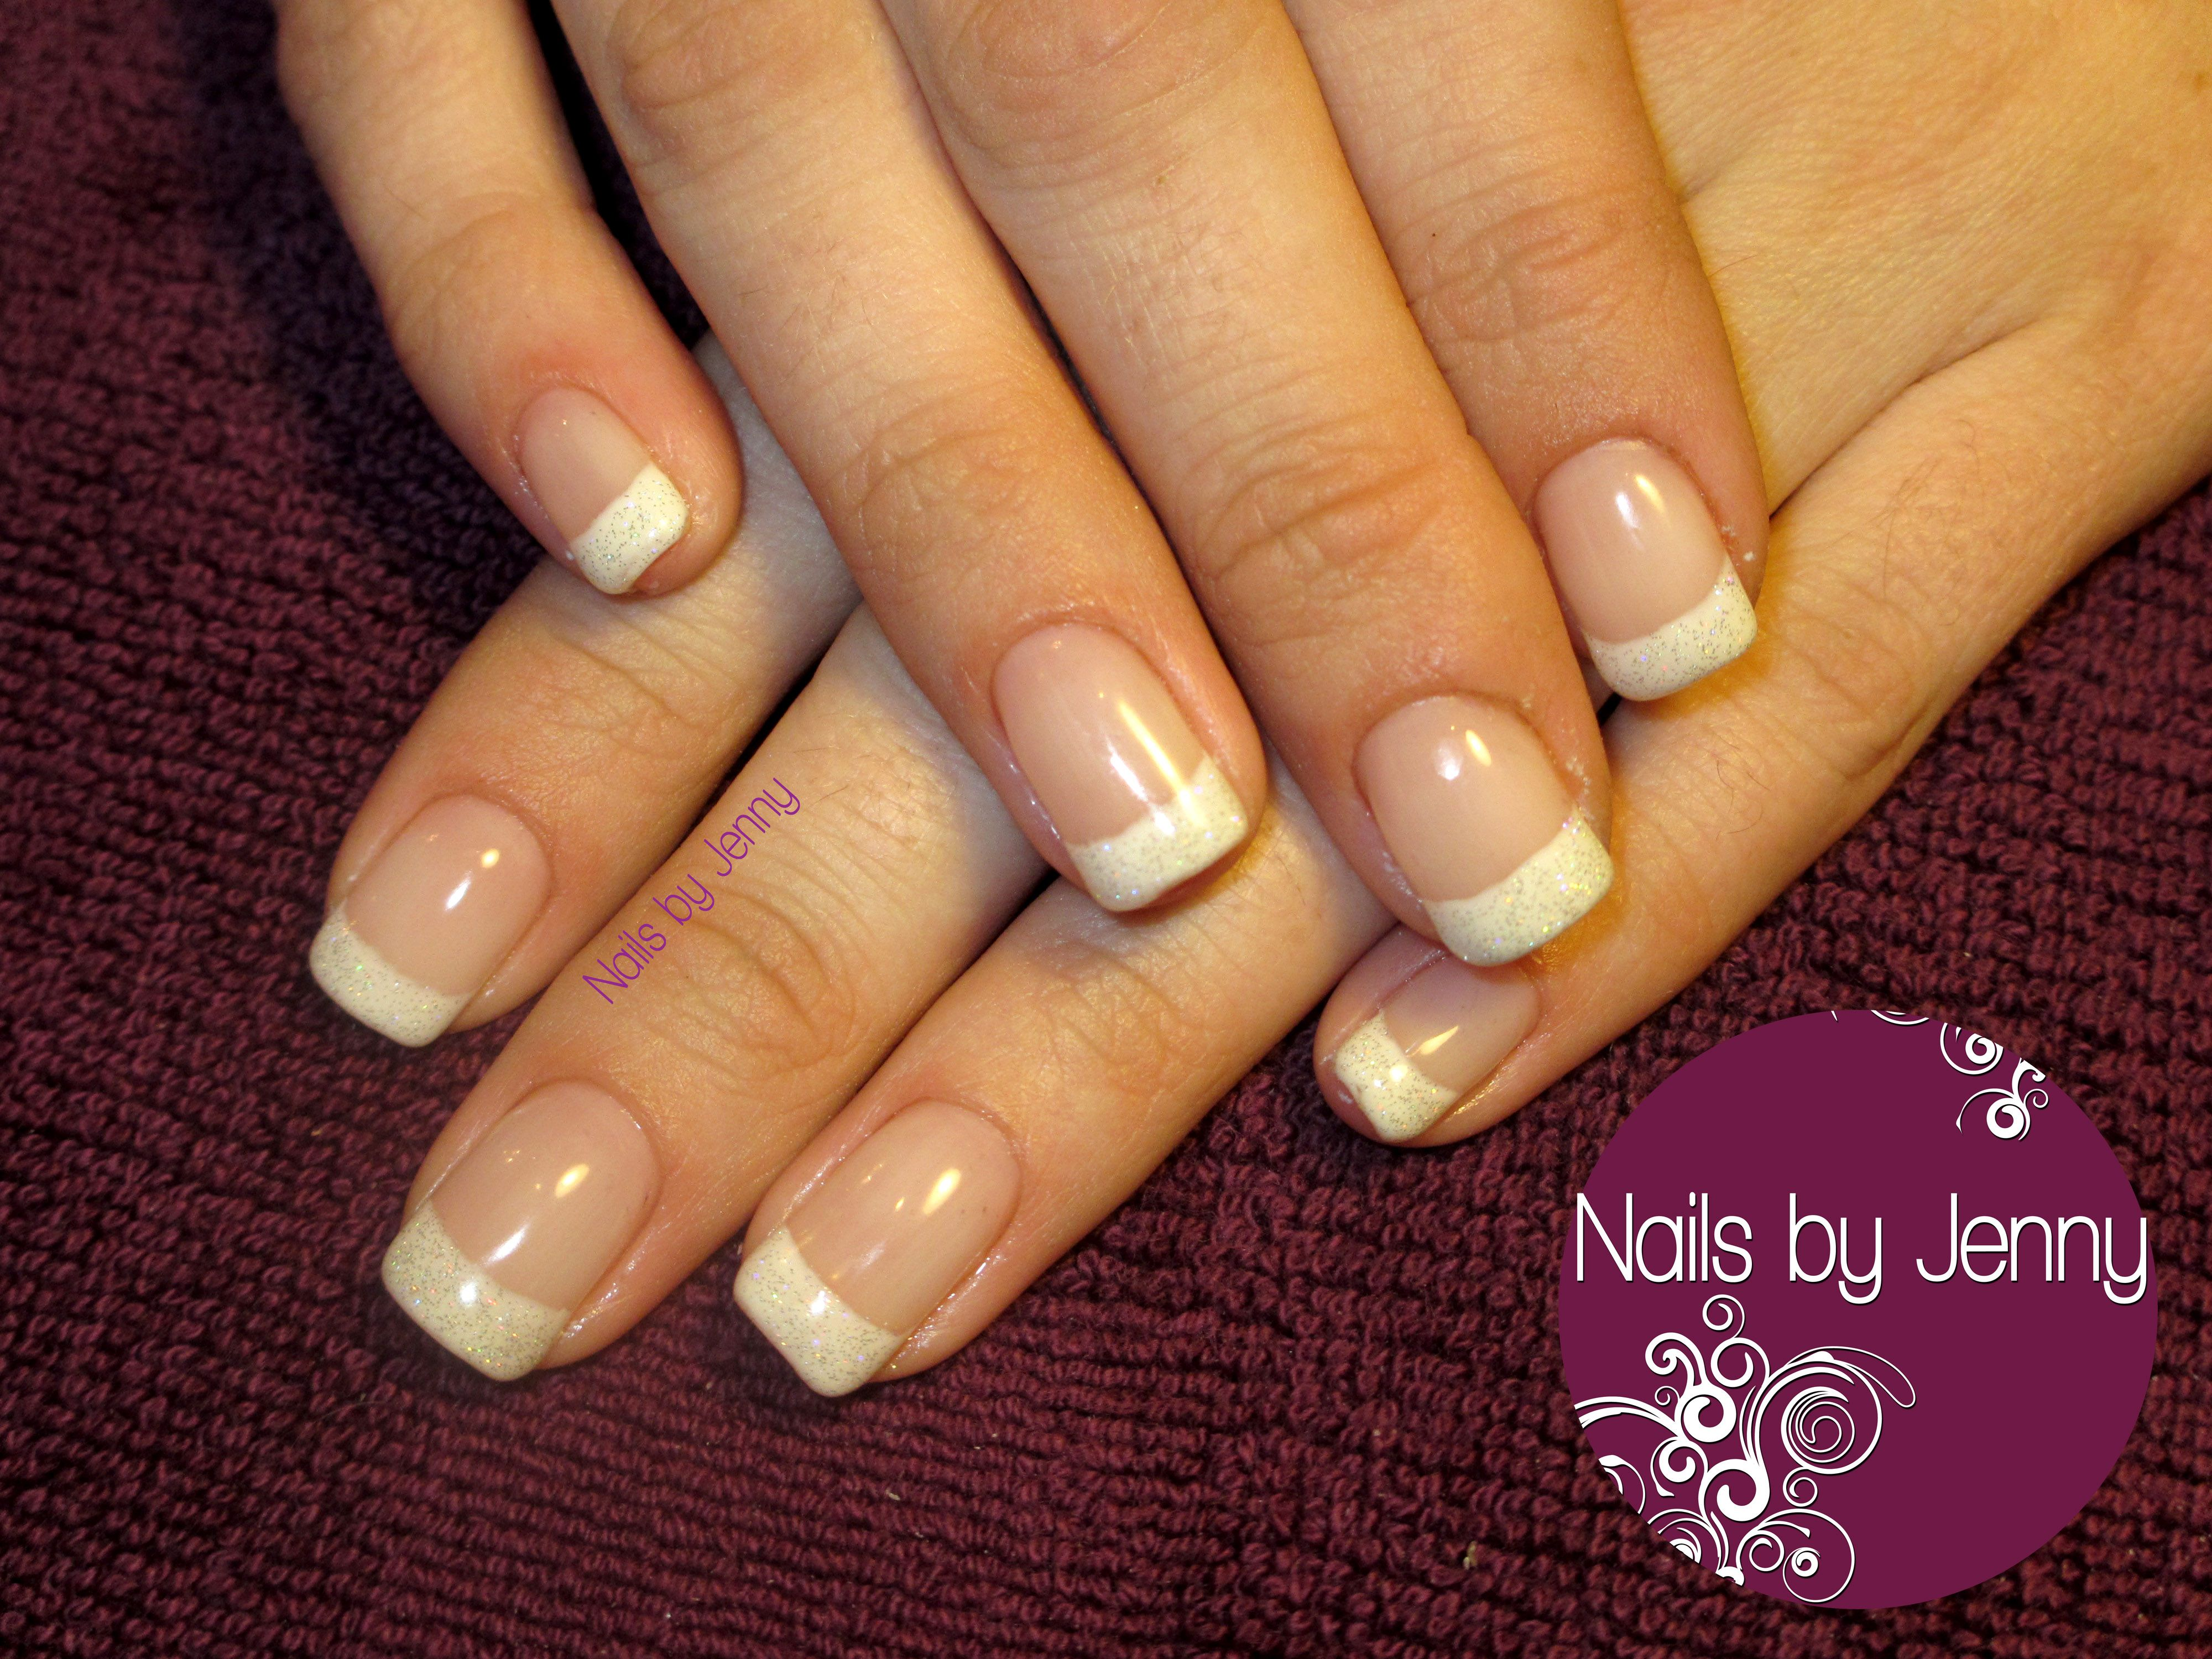 Gel Nails - French Glitter Tips | Nails by Jenny | Pinterest